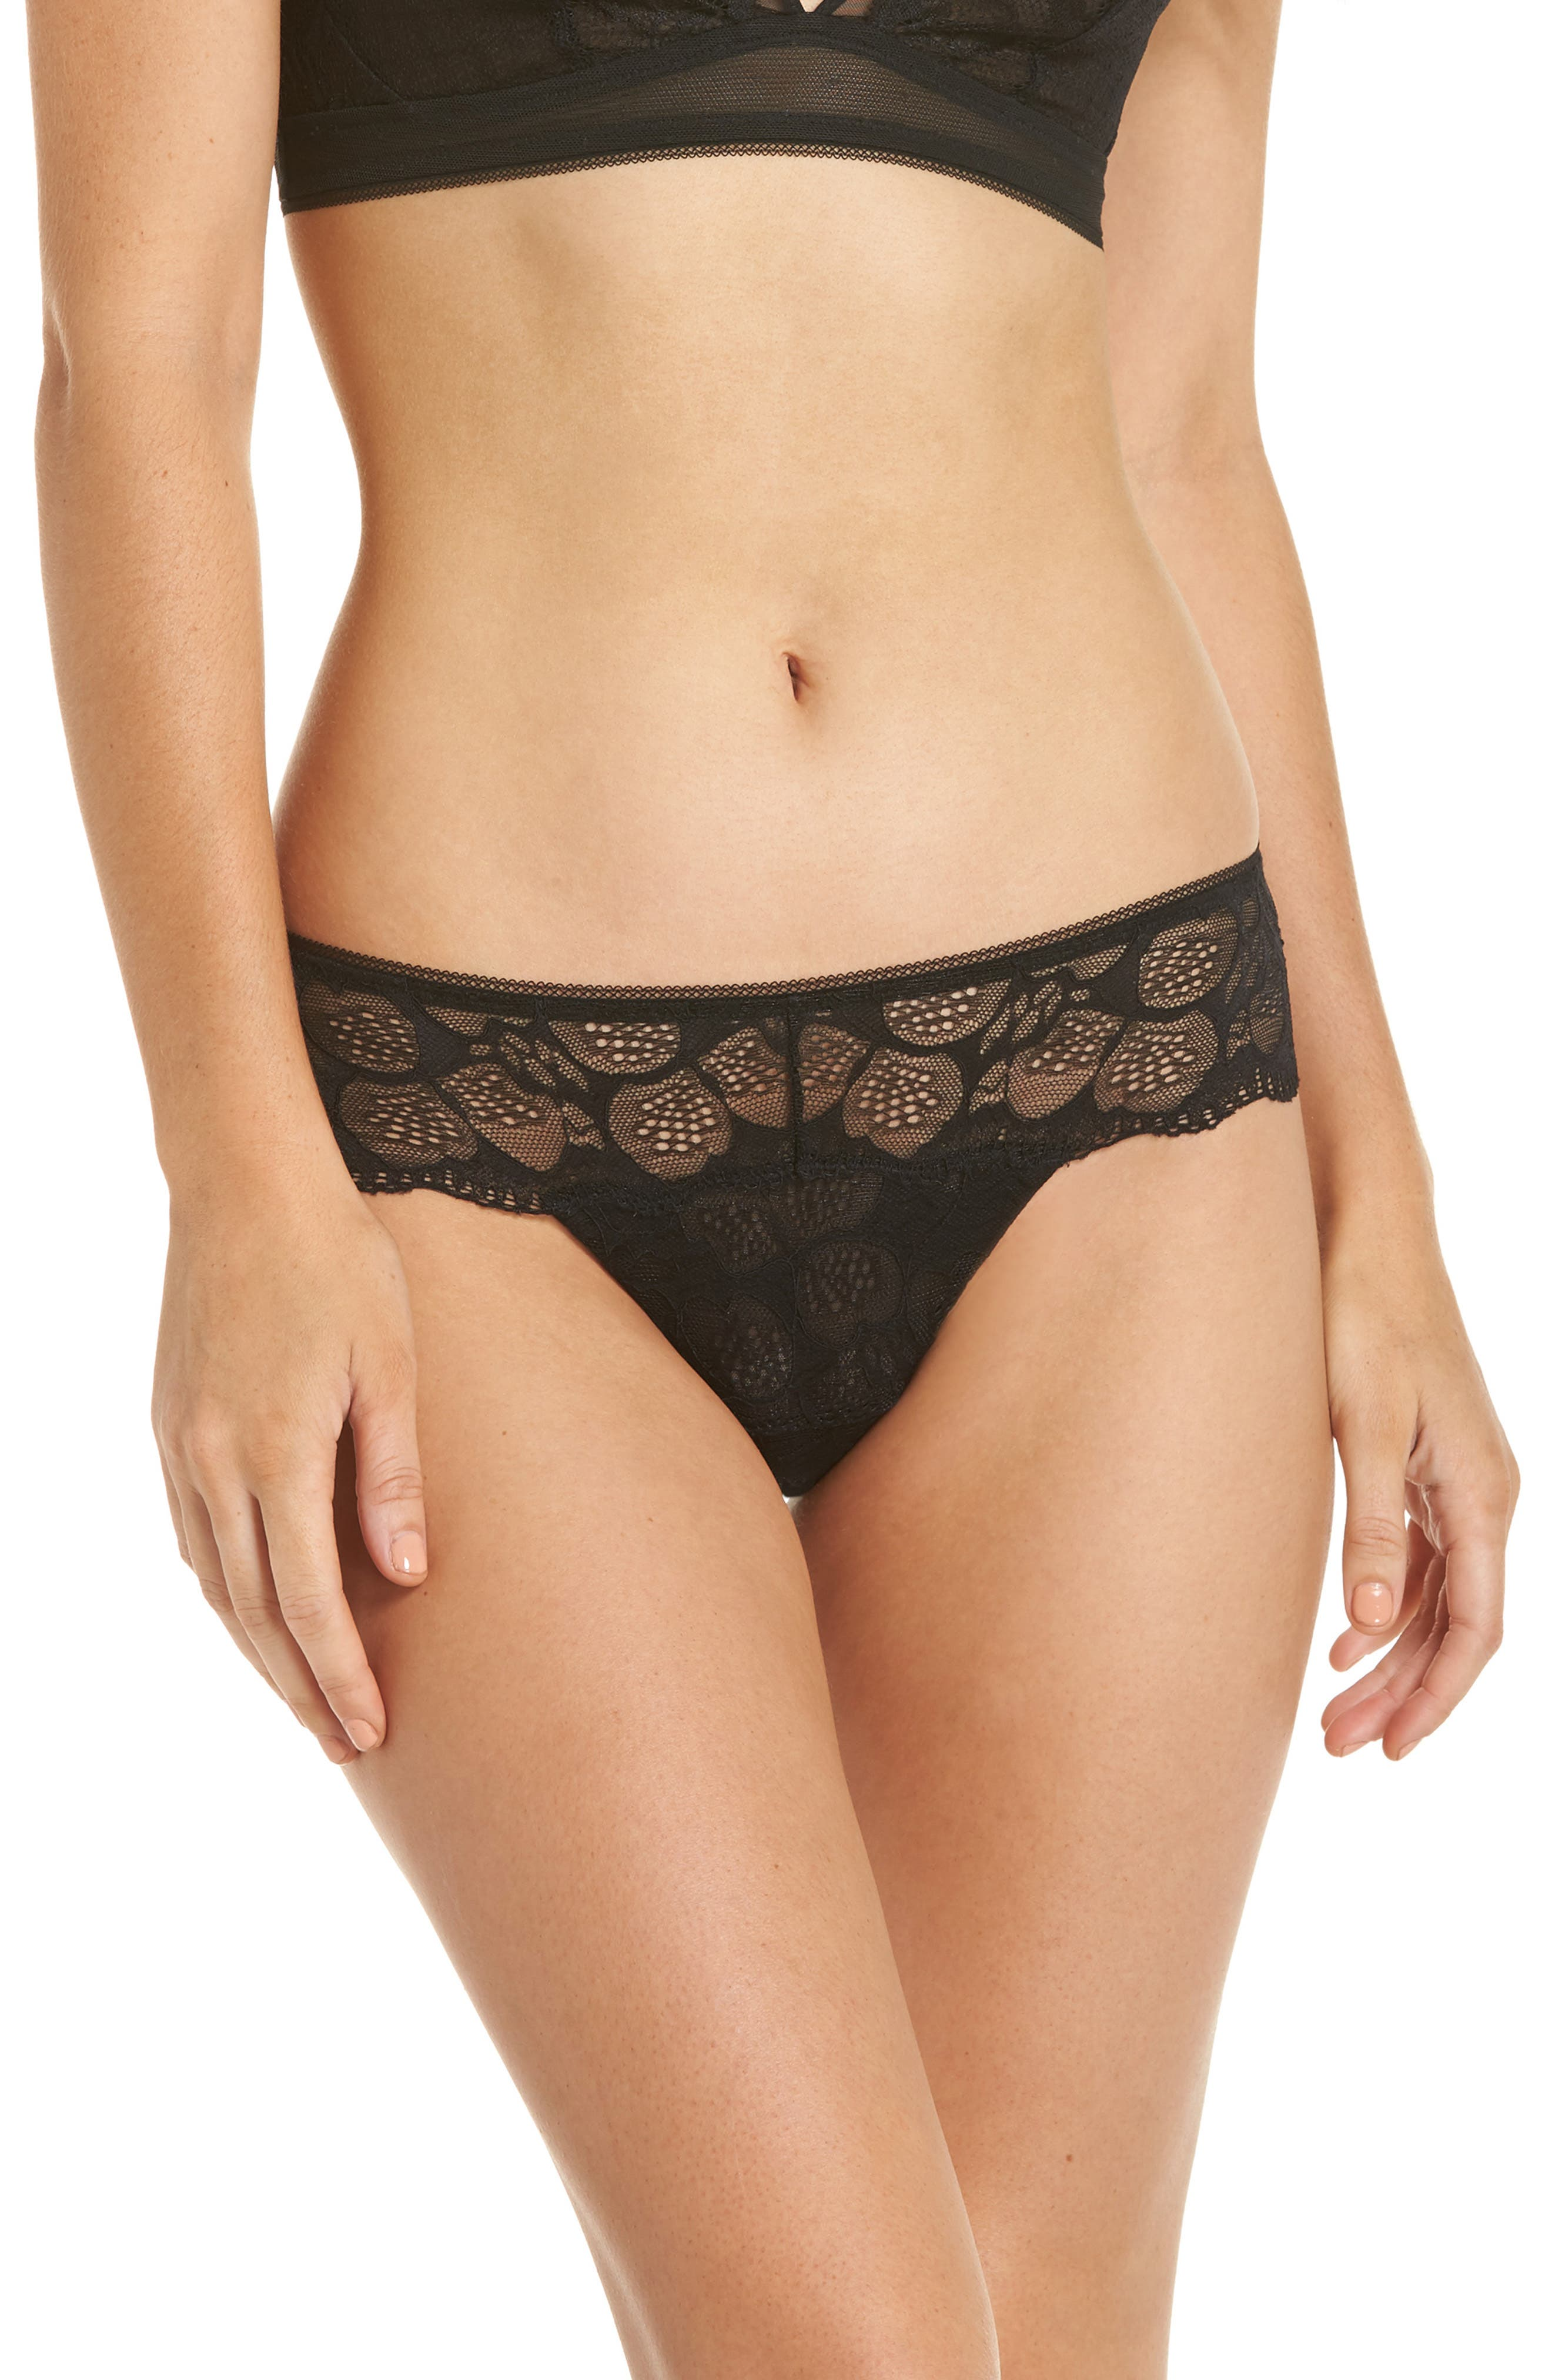 ADDICTION NOUVELLE LINGERIE Love Is On The Air Tanga in Black